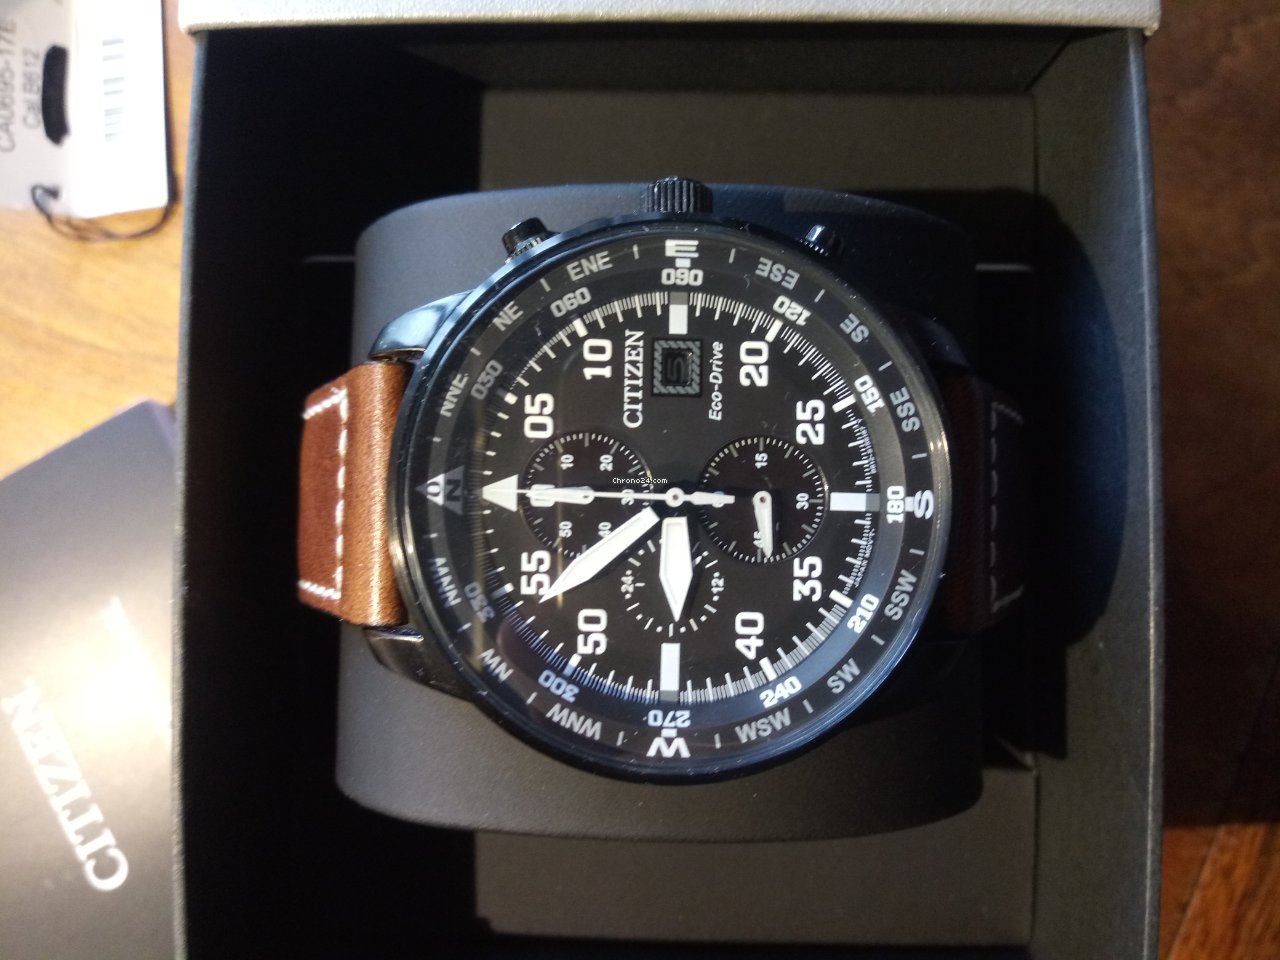 Citizen Crono Aviator Of Collection Ca0695 17e For 186 For Sale From A Private Seller On Chrono24